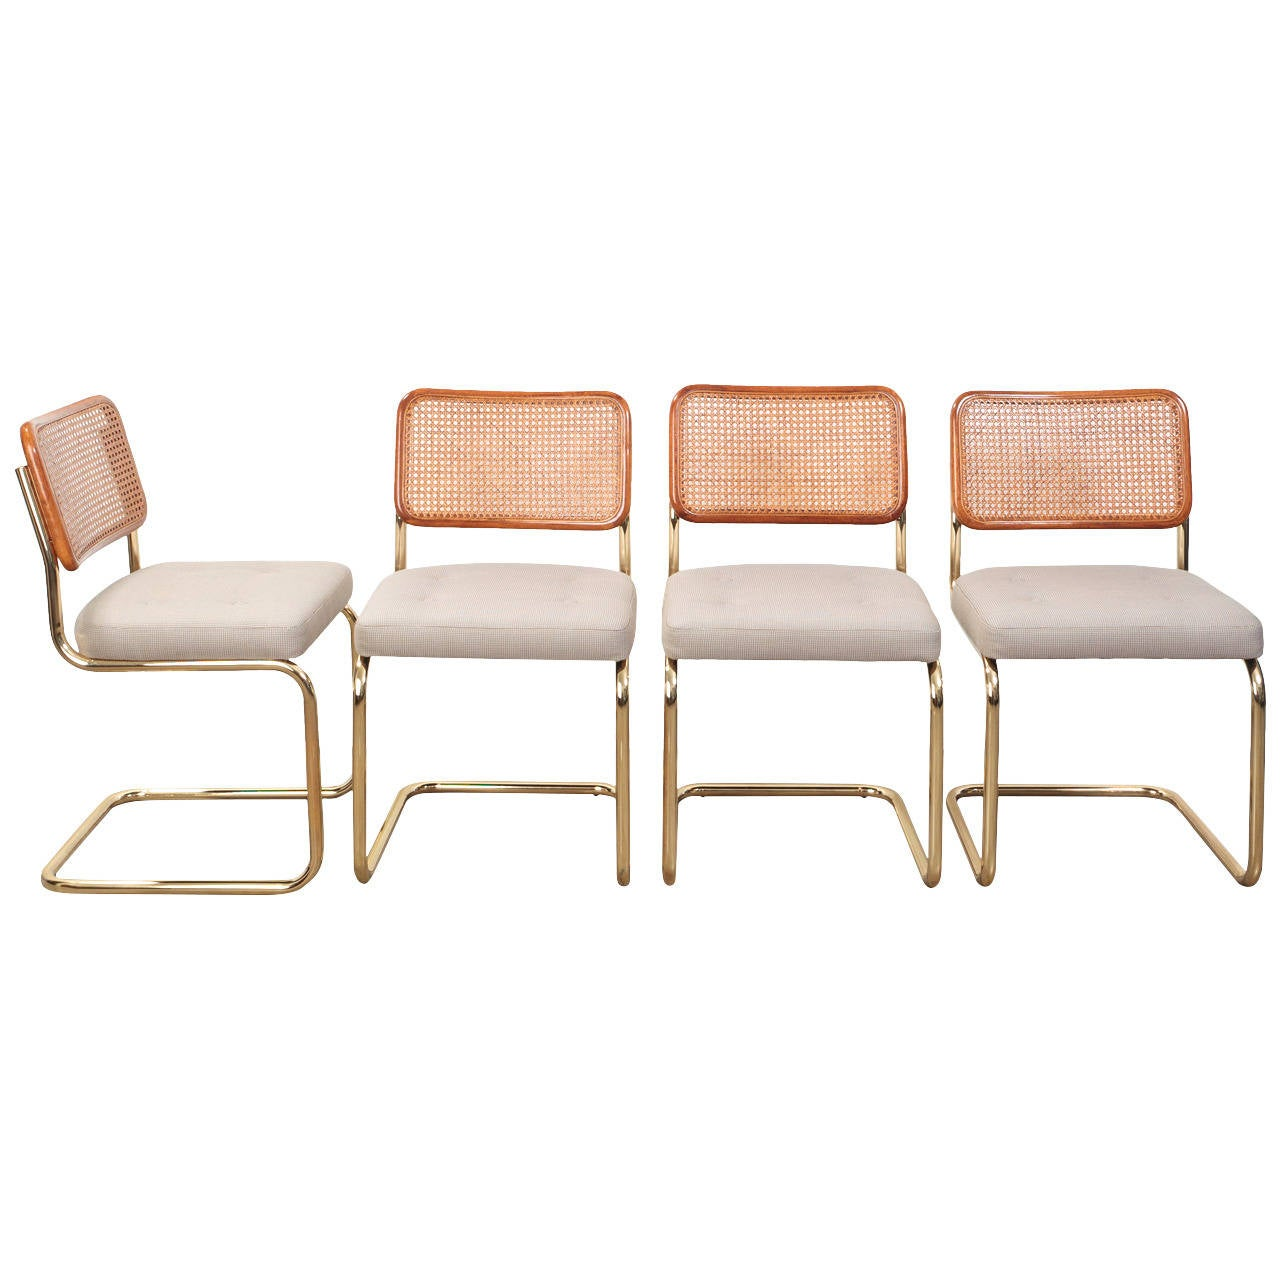 marcel breuer style chairs